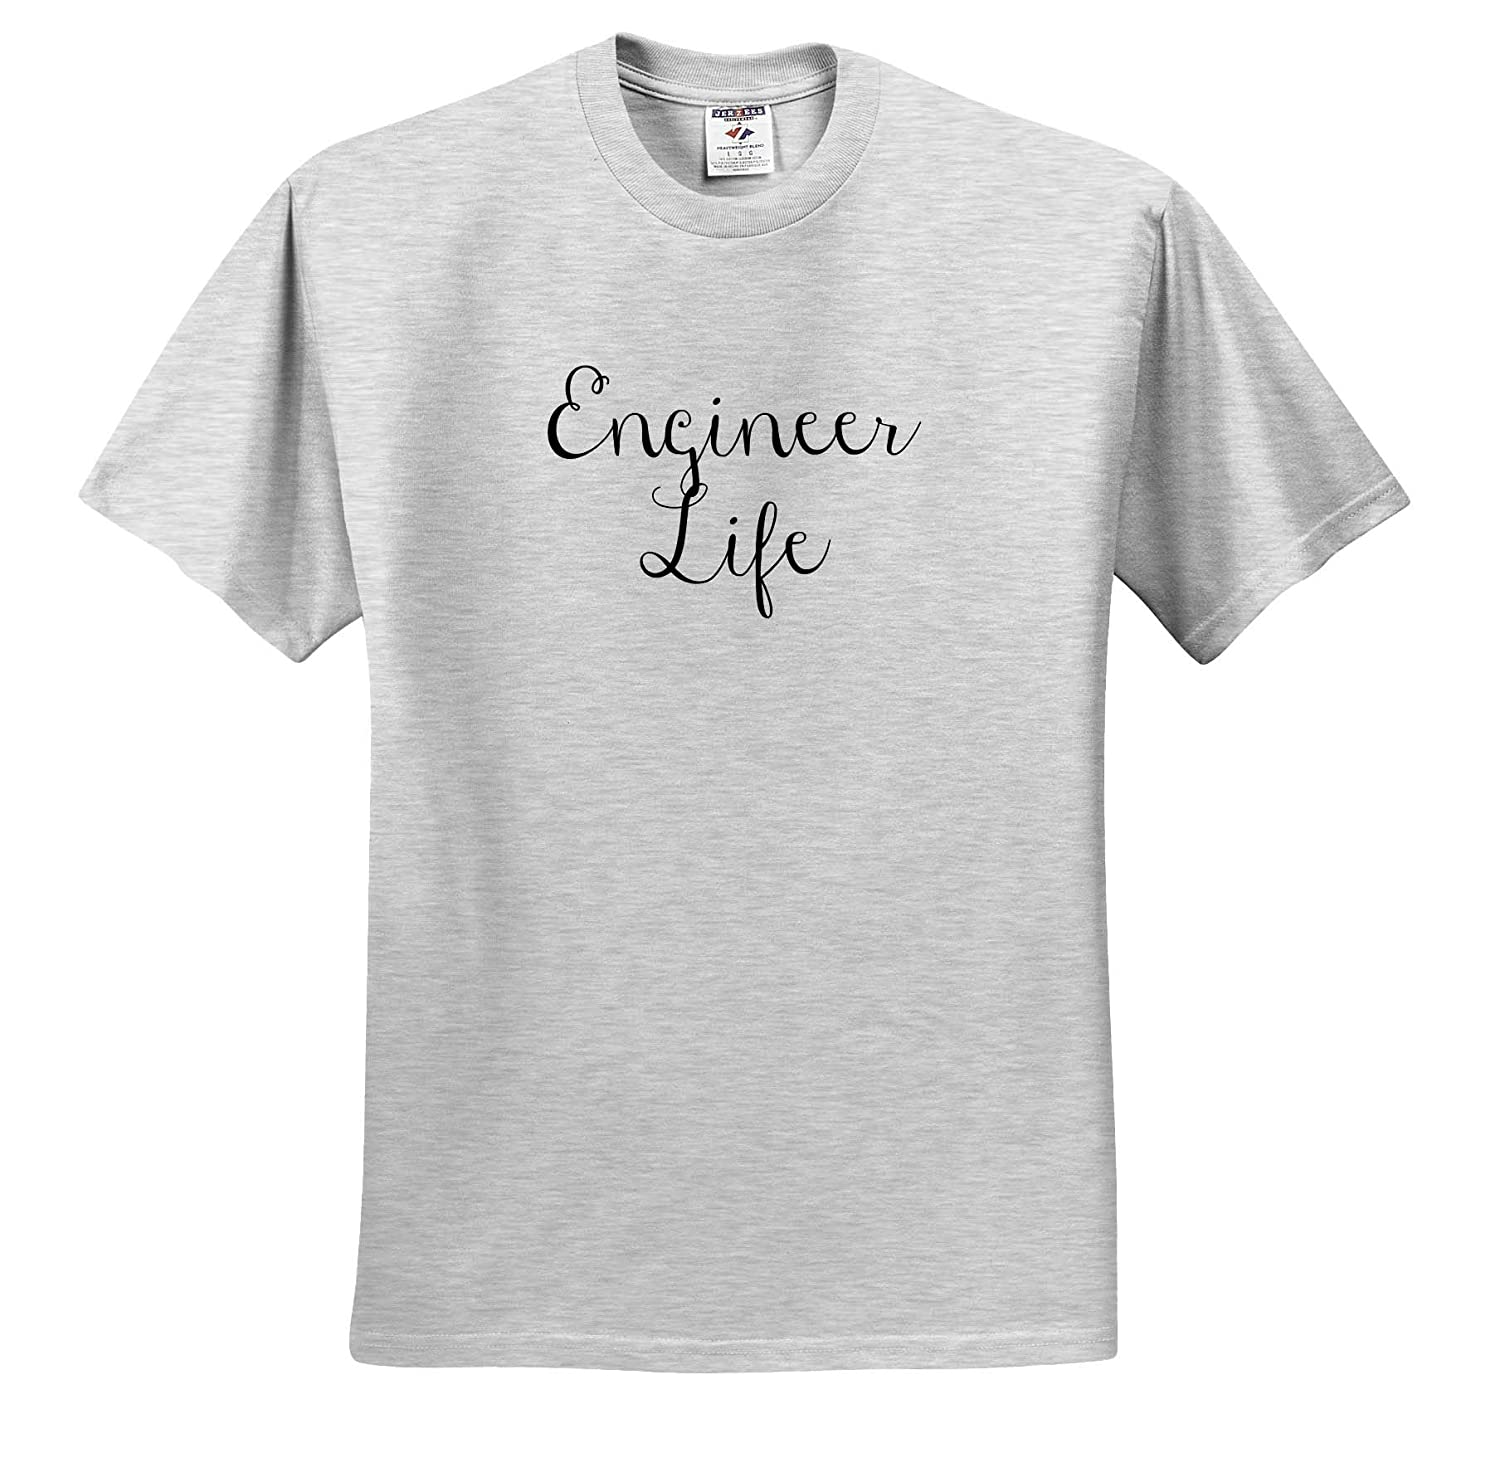 Adult T-Shirt XL ts/_319519 3dRose Gabriella-Quote Image of Engineer Life Quote